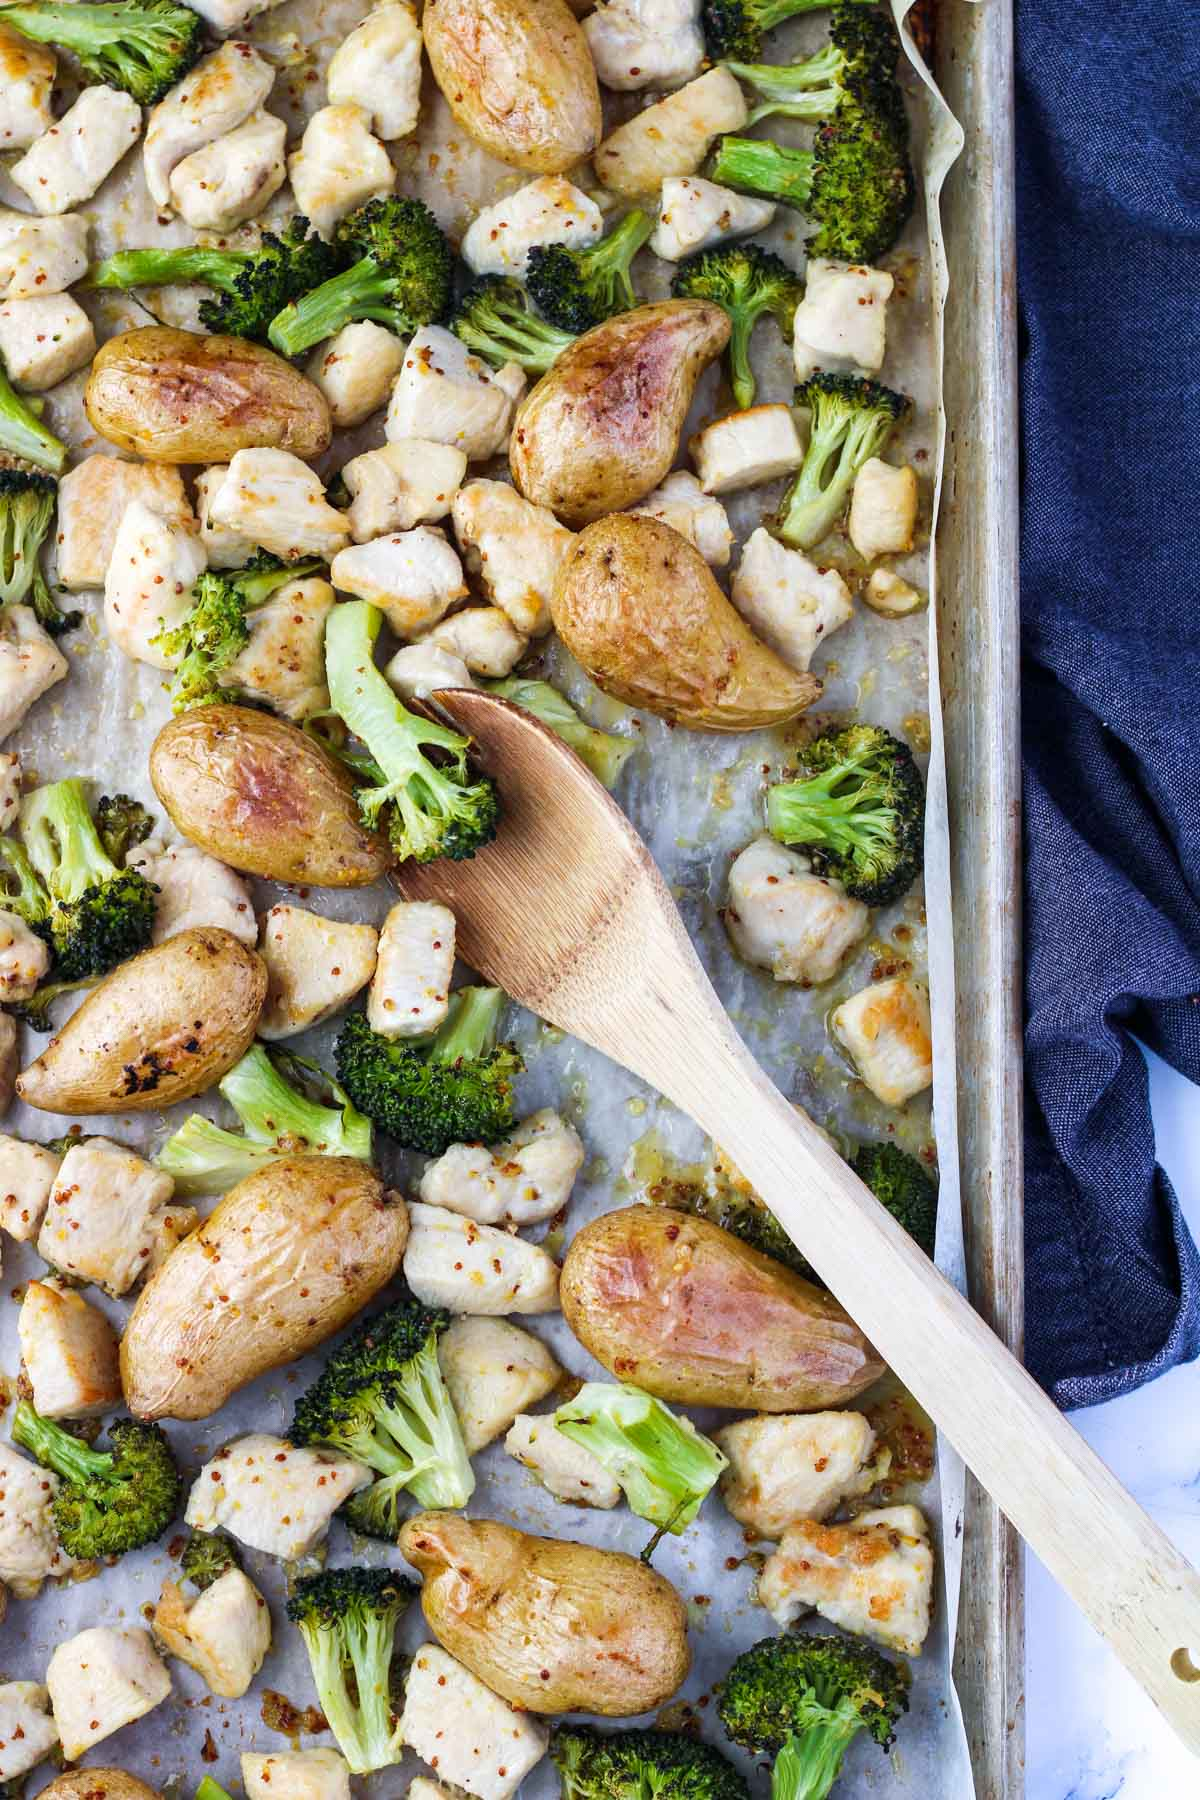 Sheet Pan with broccoli, chicken and potatoes with a wooden spoon in it